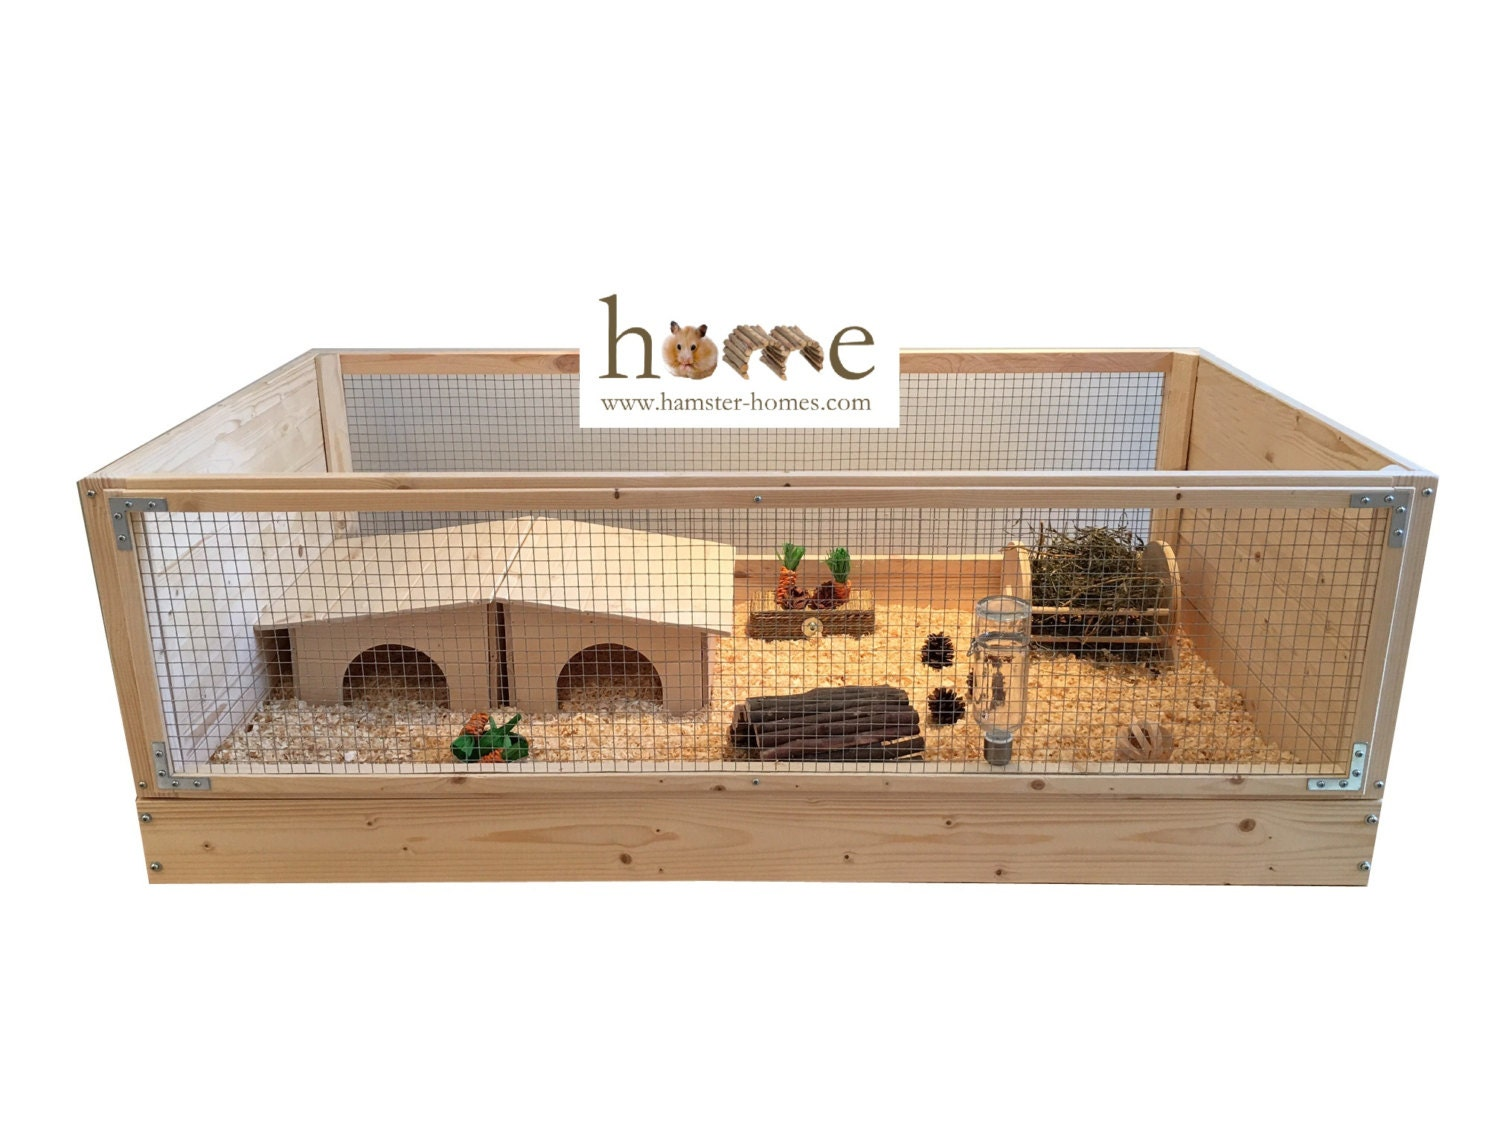 Super large guinea pig cage c c style 120x60cm for Wooden guinea pig cage